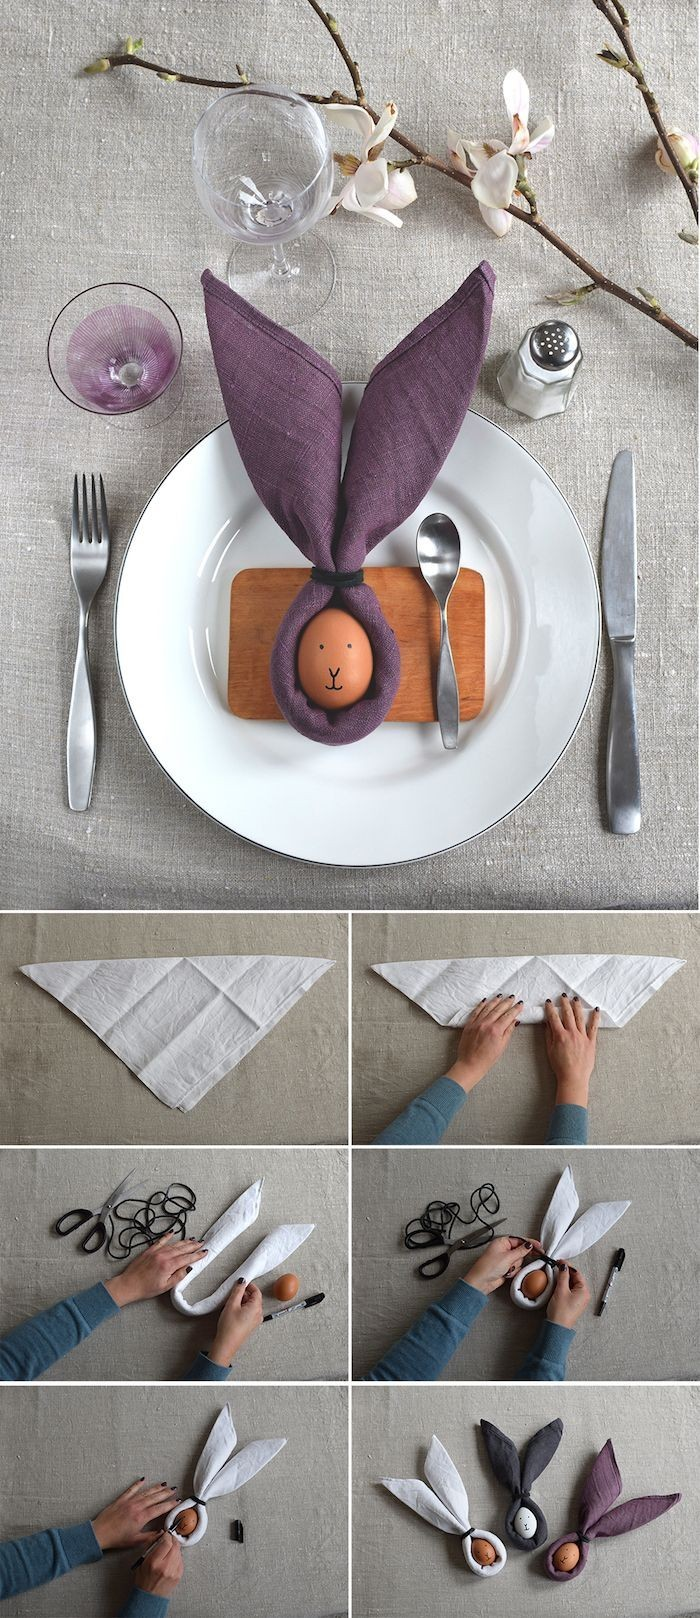 how to fold a napkin, step by step diy tutorial, easter table decorations, purple napkins